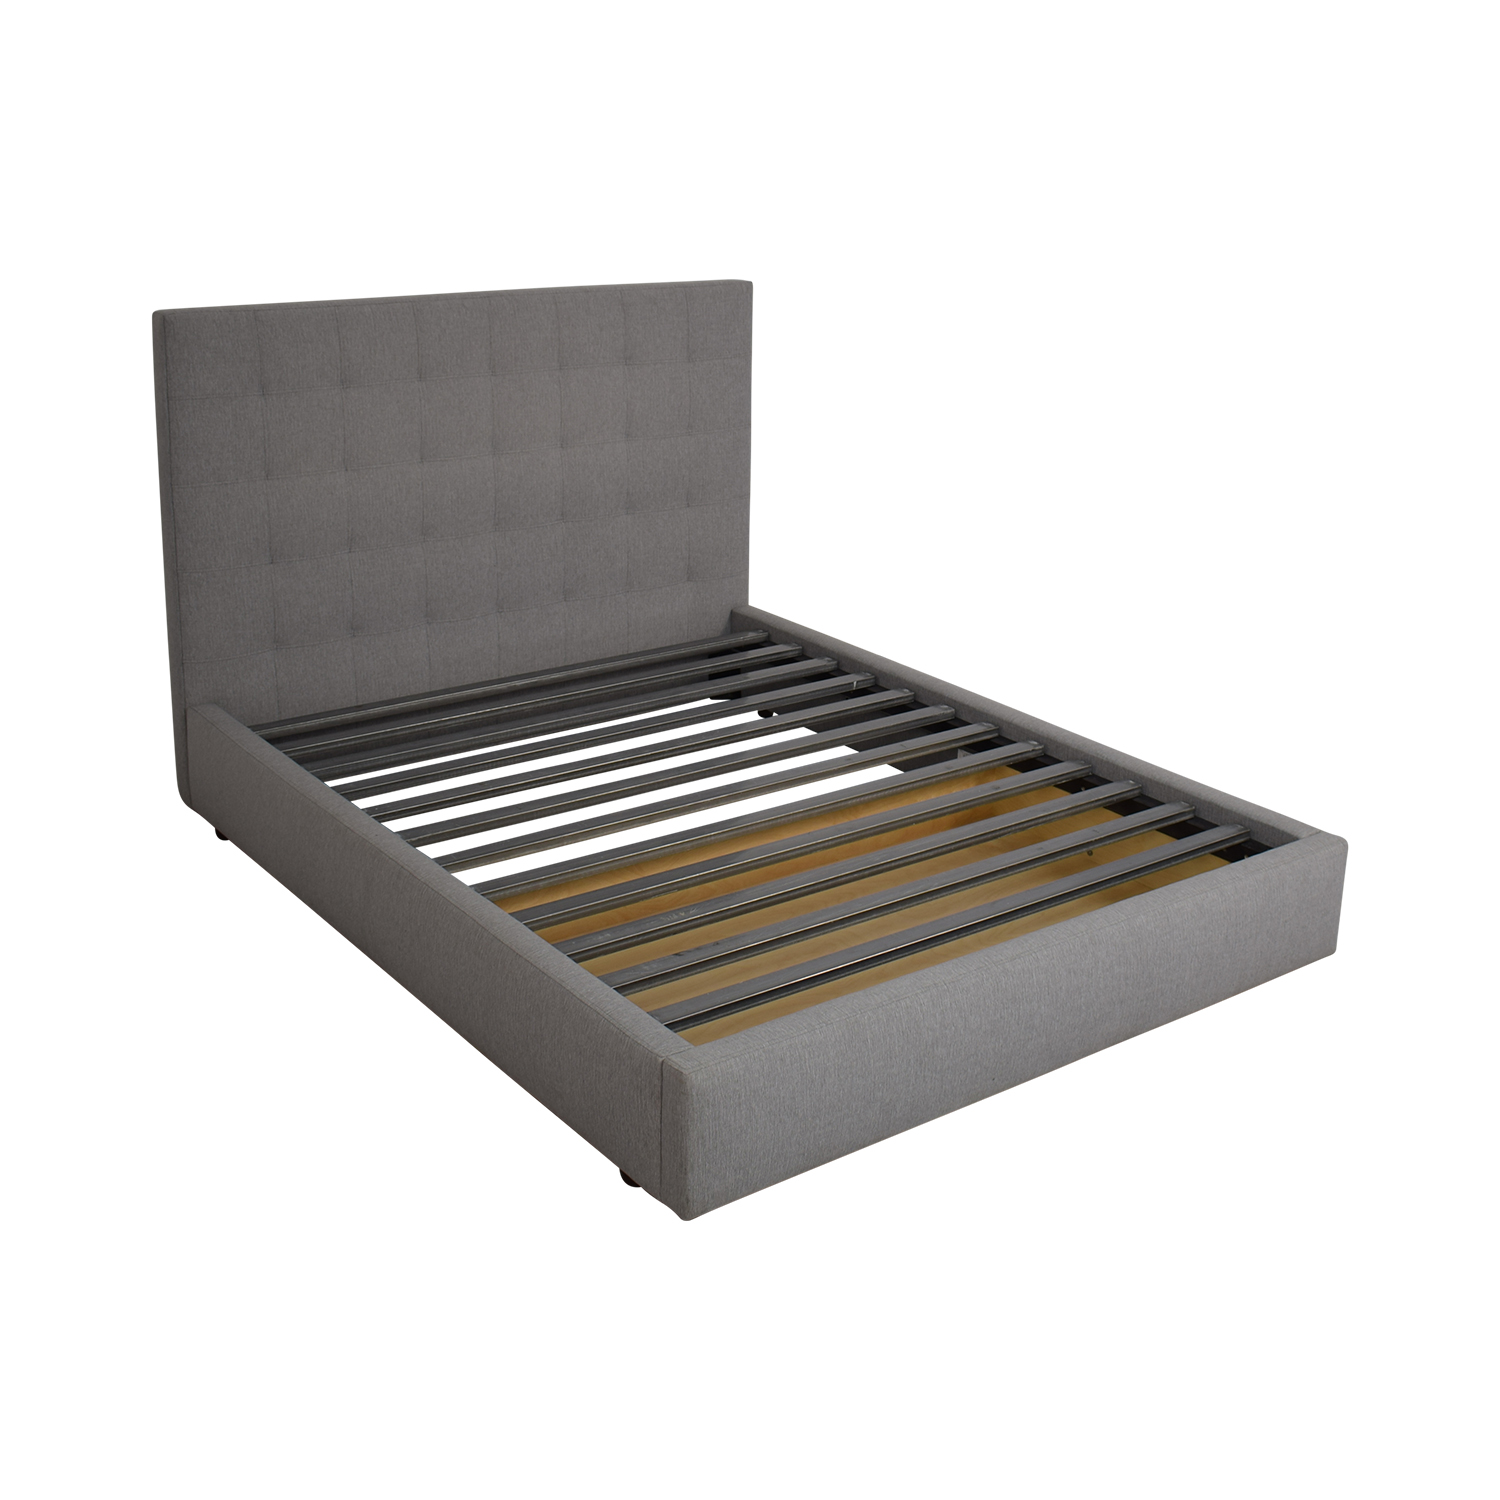 Room & Board Room & Board Avery Upholstered Bed with Storage Drawer